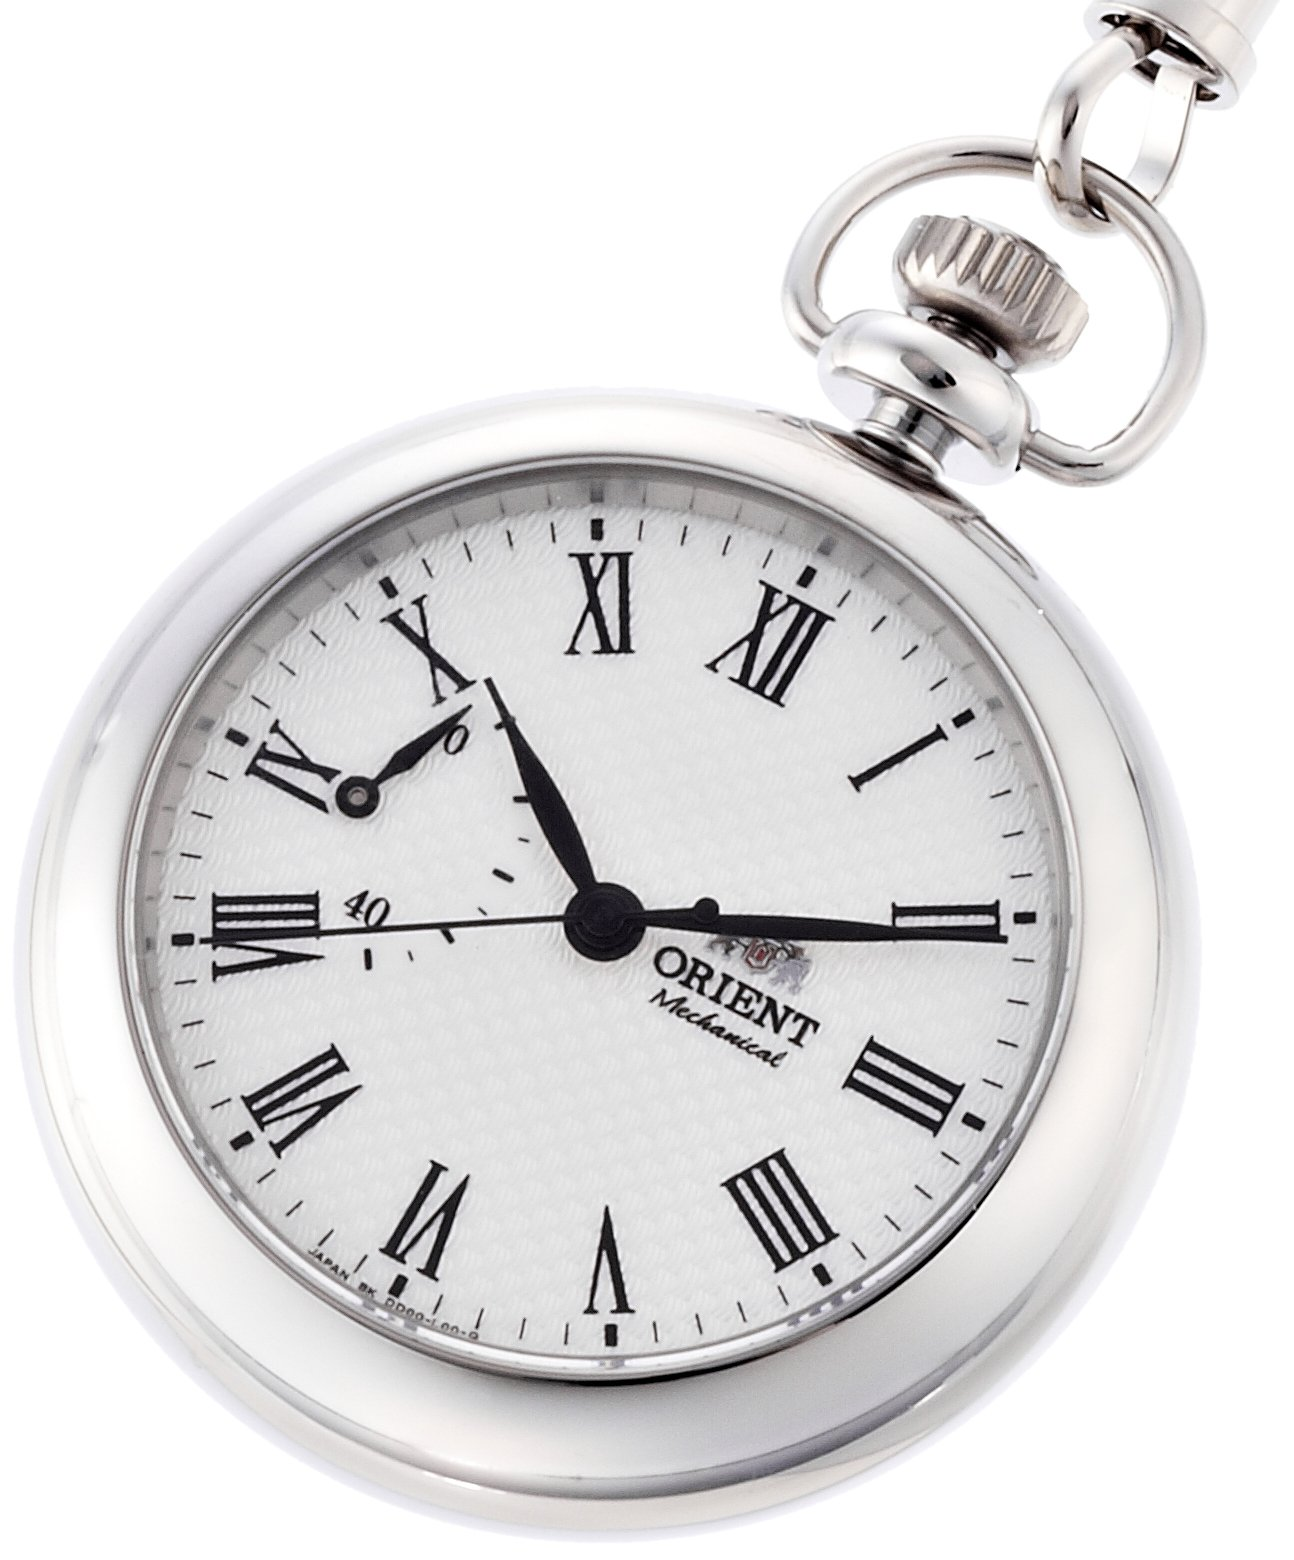 ORIENT WORLD STAGE Collection pocket watch hand winding sapphire glass WV0031DD by ORIENT (Image #4)